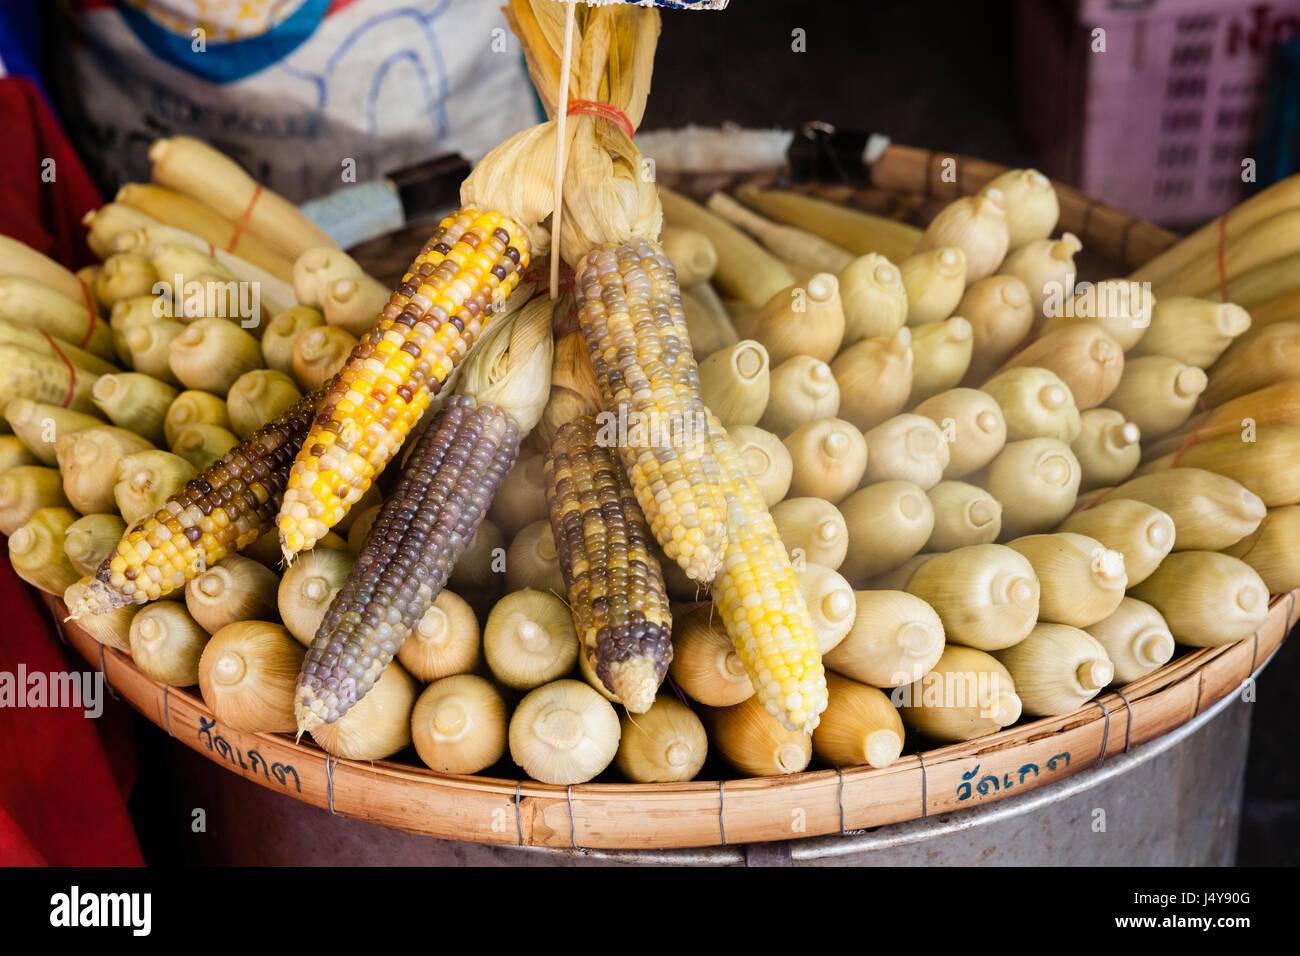 Corn at the market for sale. Chiang Mai, Thailand. - Stock Image